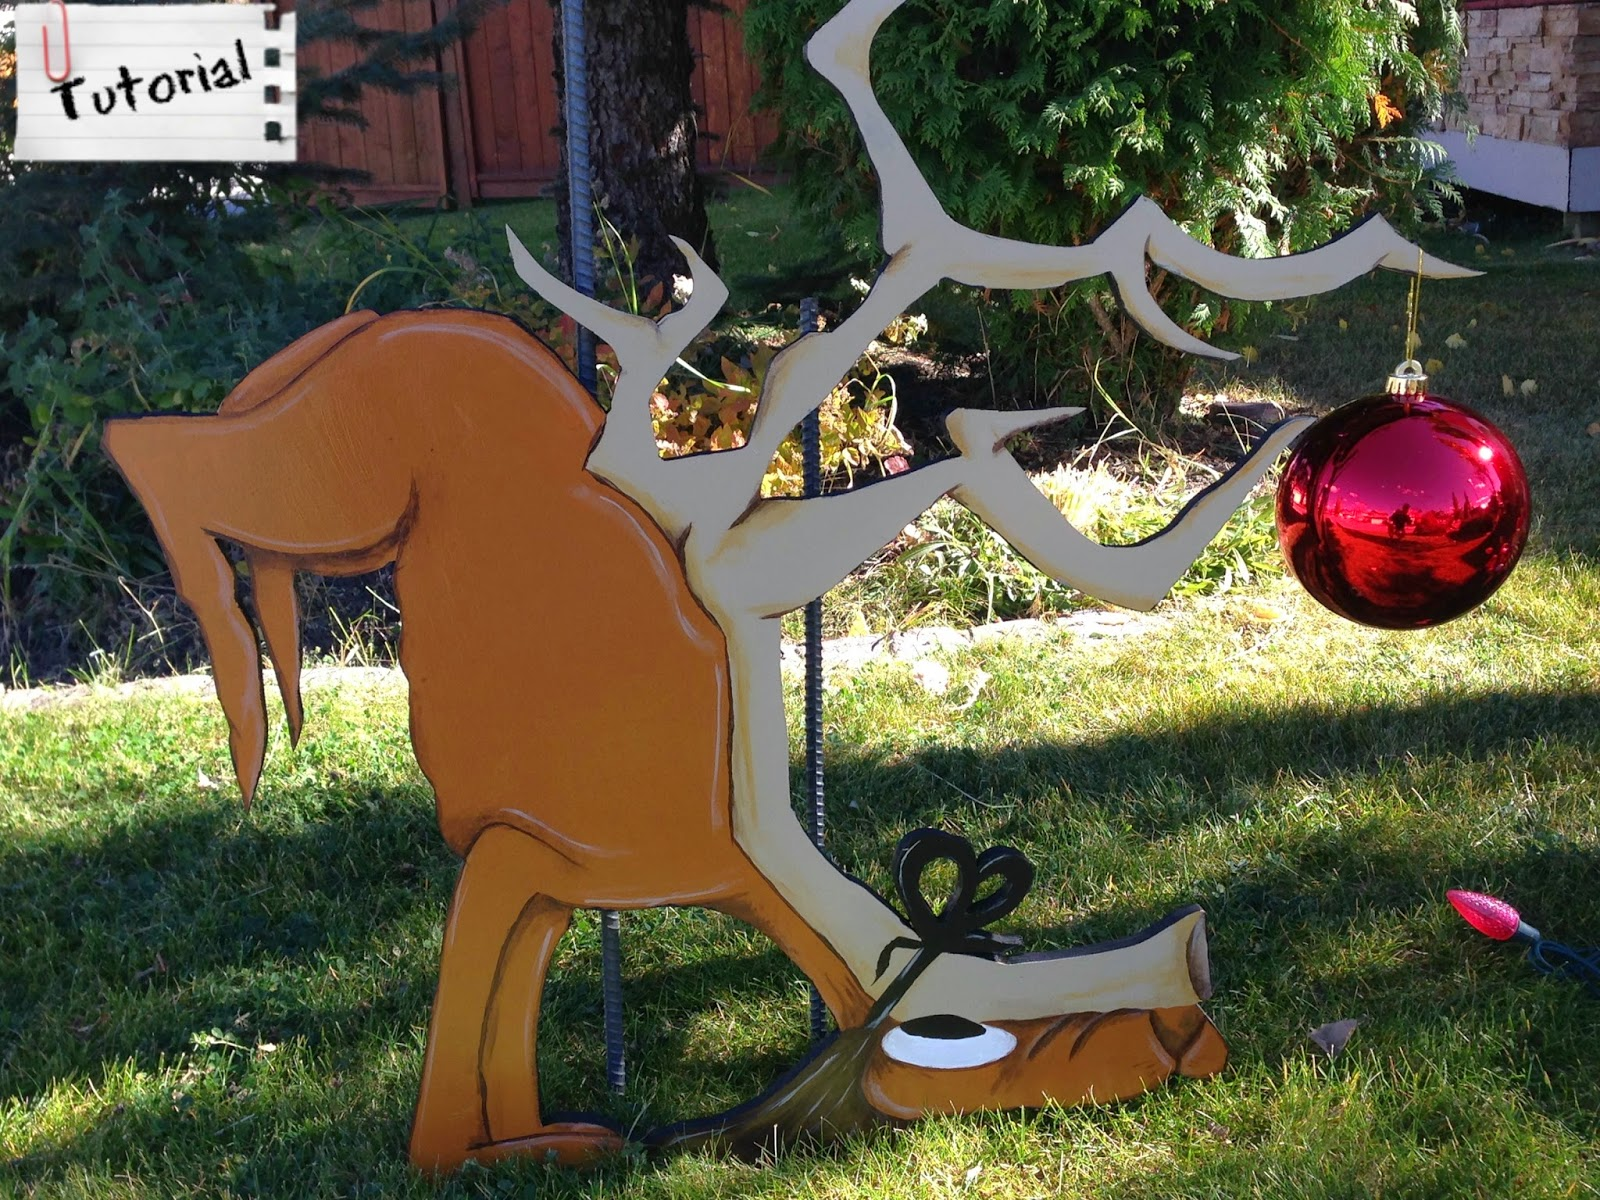 nicole wright designs - Grinch Stealing Christmas Lights